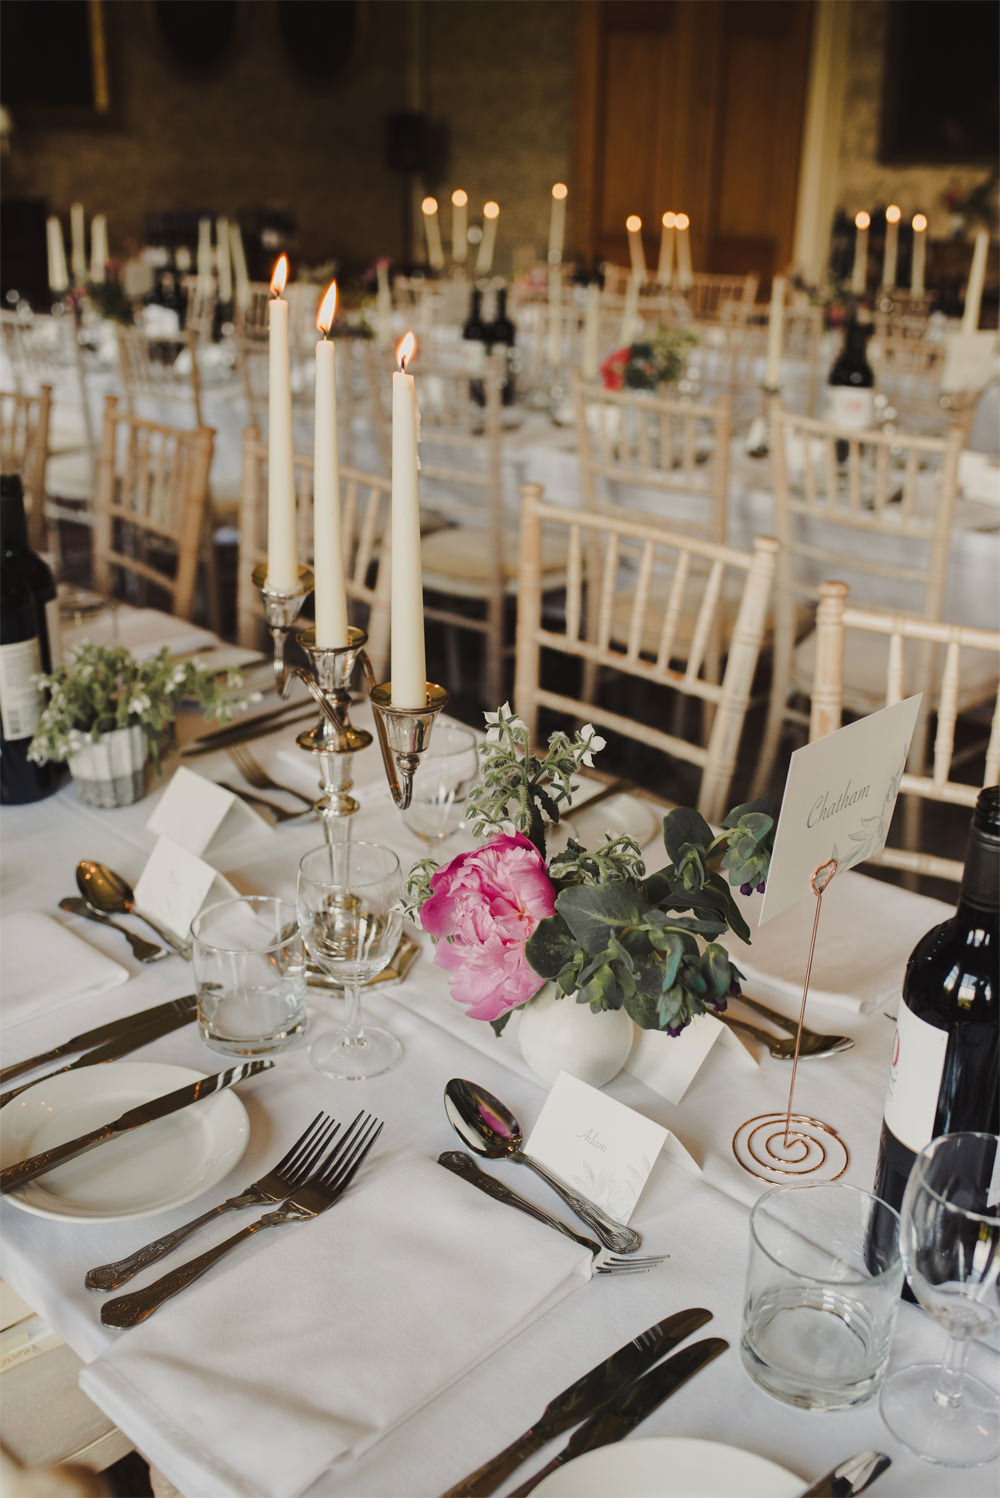 Long Tables Decor Candlesticks Flowers Cambo Estate Wedding Anna Urban Wedding Photography